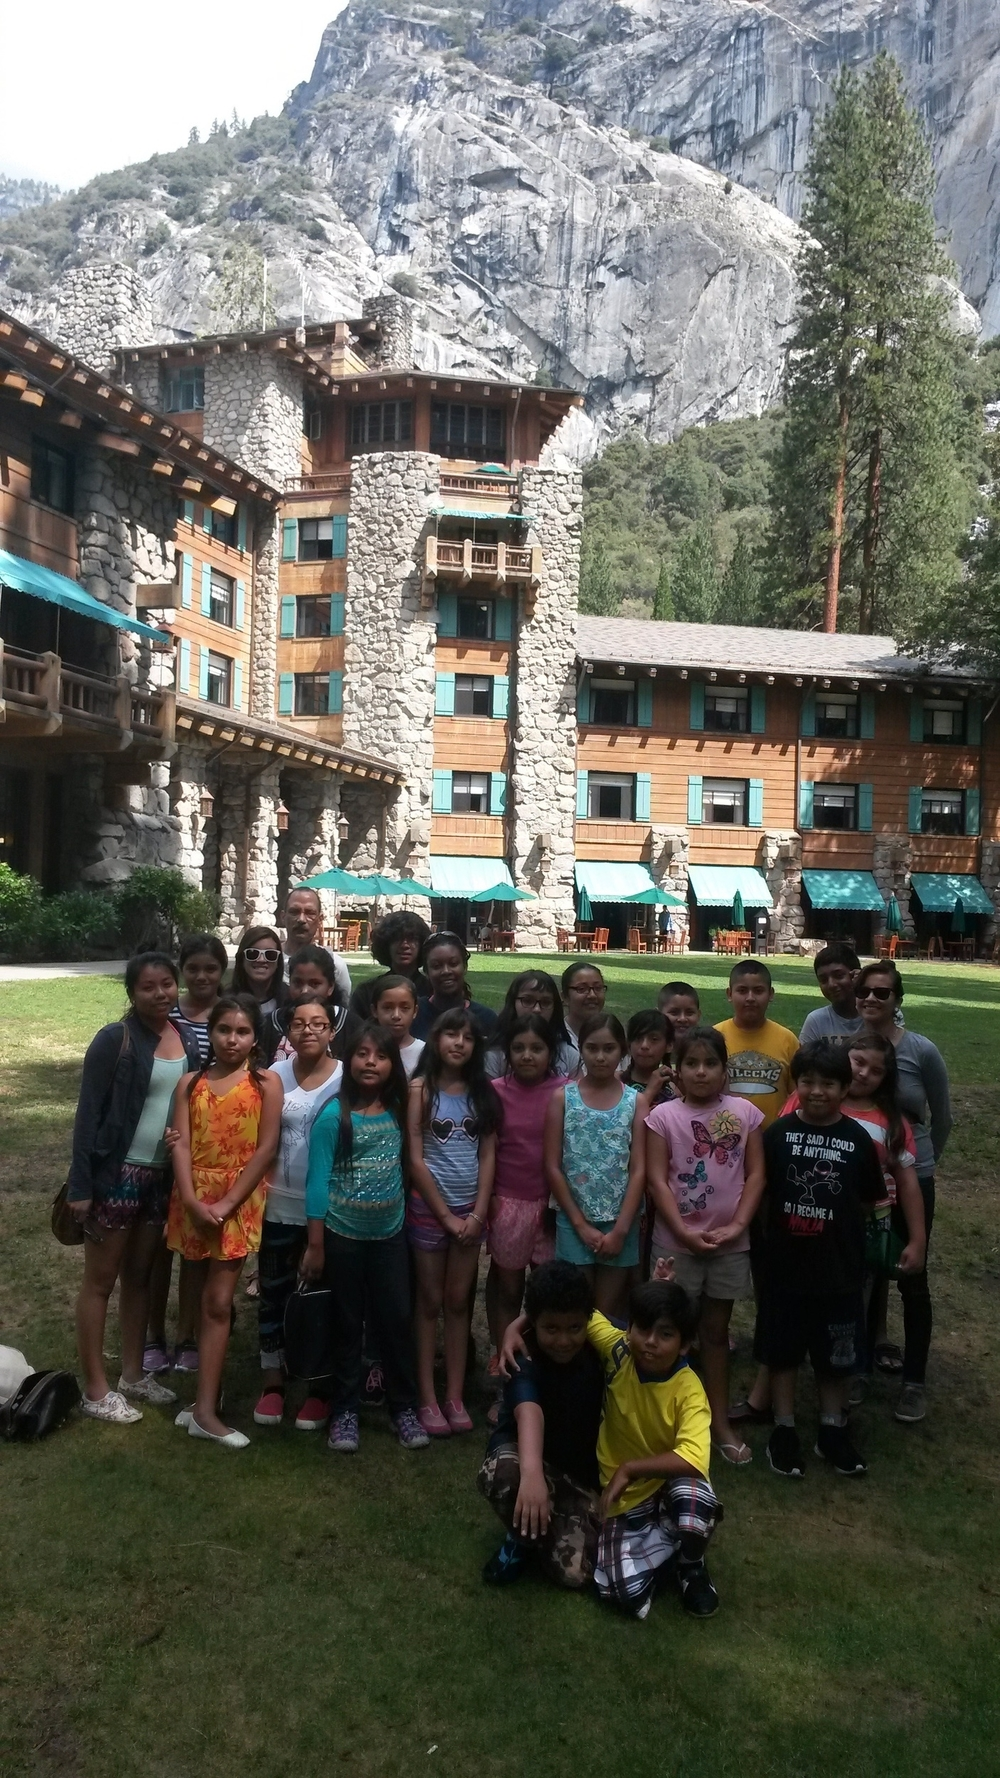 Kids in Yosemite July 2015.jpg